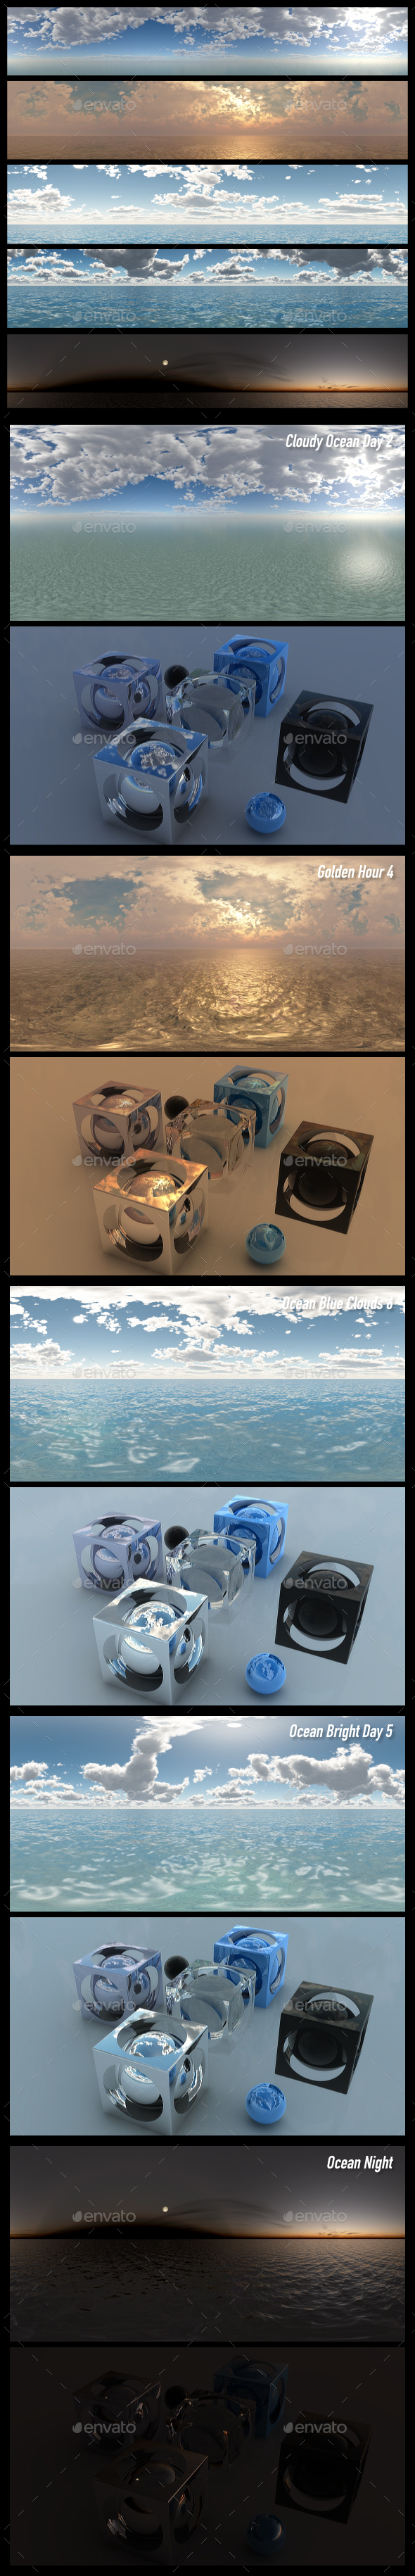 HDRI Pack 9 - 3DOcean Item for Sale